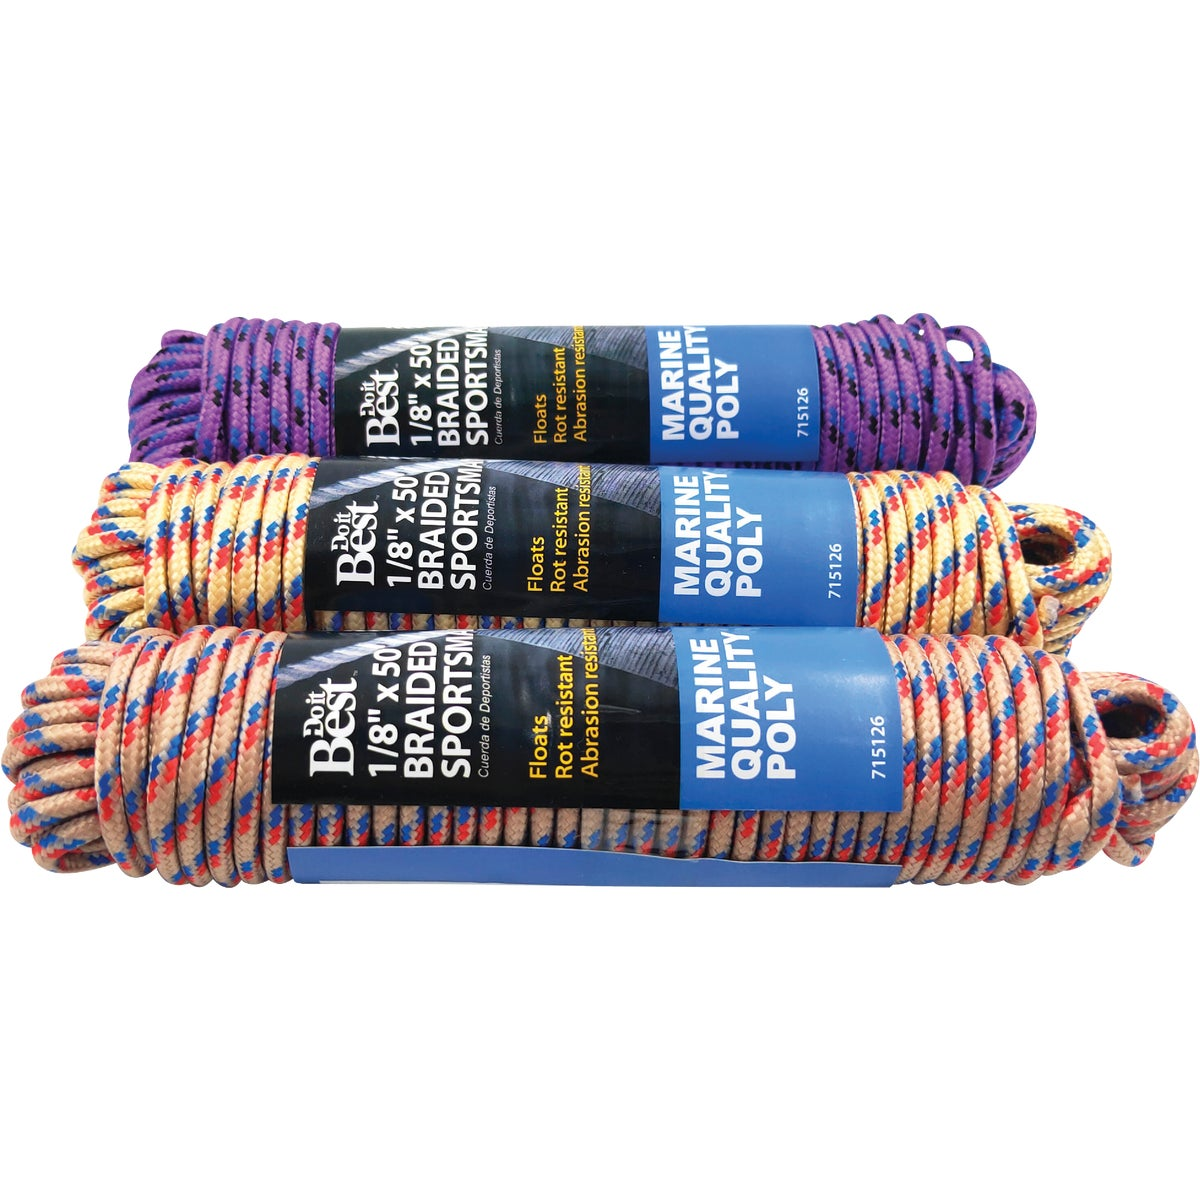 "1/8""X50' SPORTSMAN ROPE - 715126 by Do it Best"